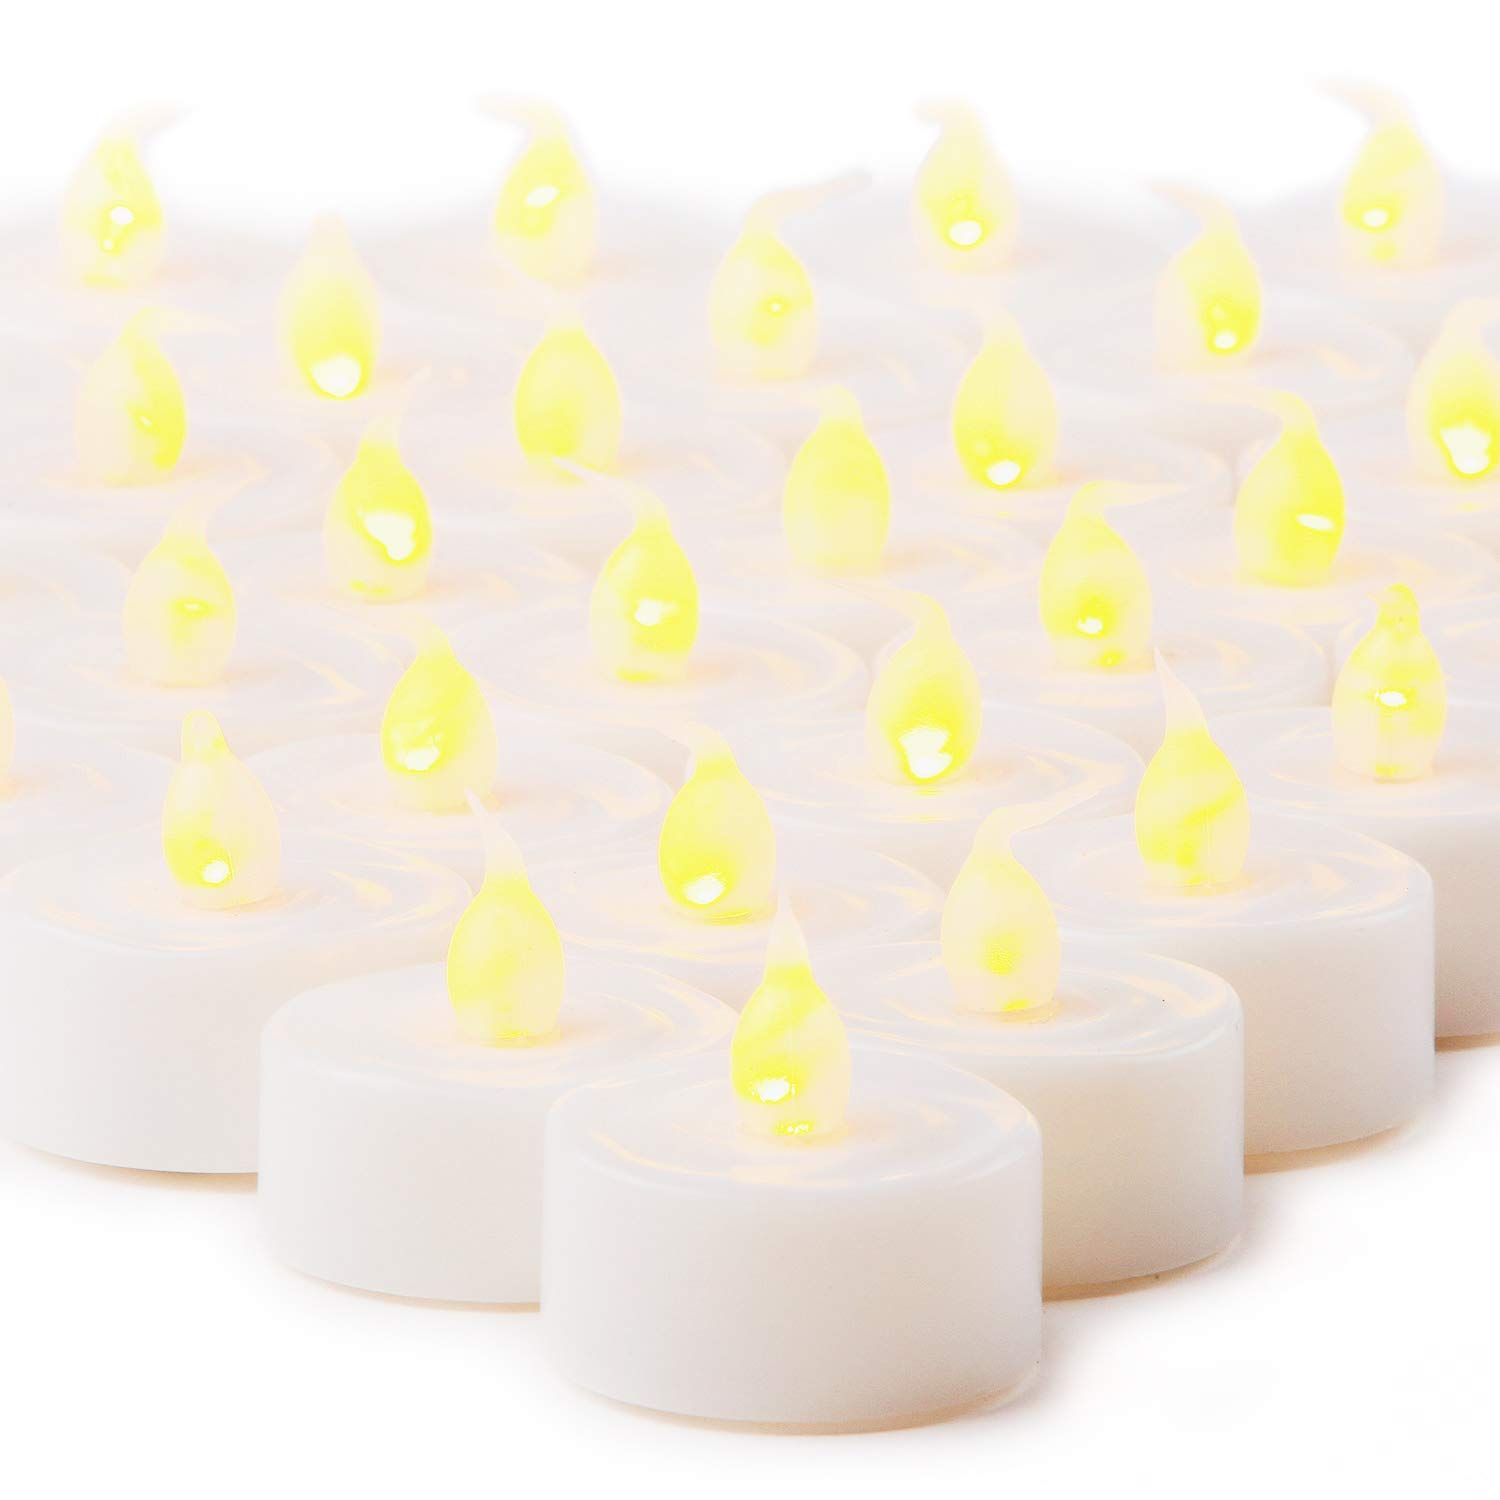 LampLust 100 White Flameless Tea Lights with Realistic Flickering Amber LED, Value Pack, Resin, Indoor/Outdoor Use, Batteries Included